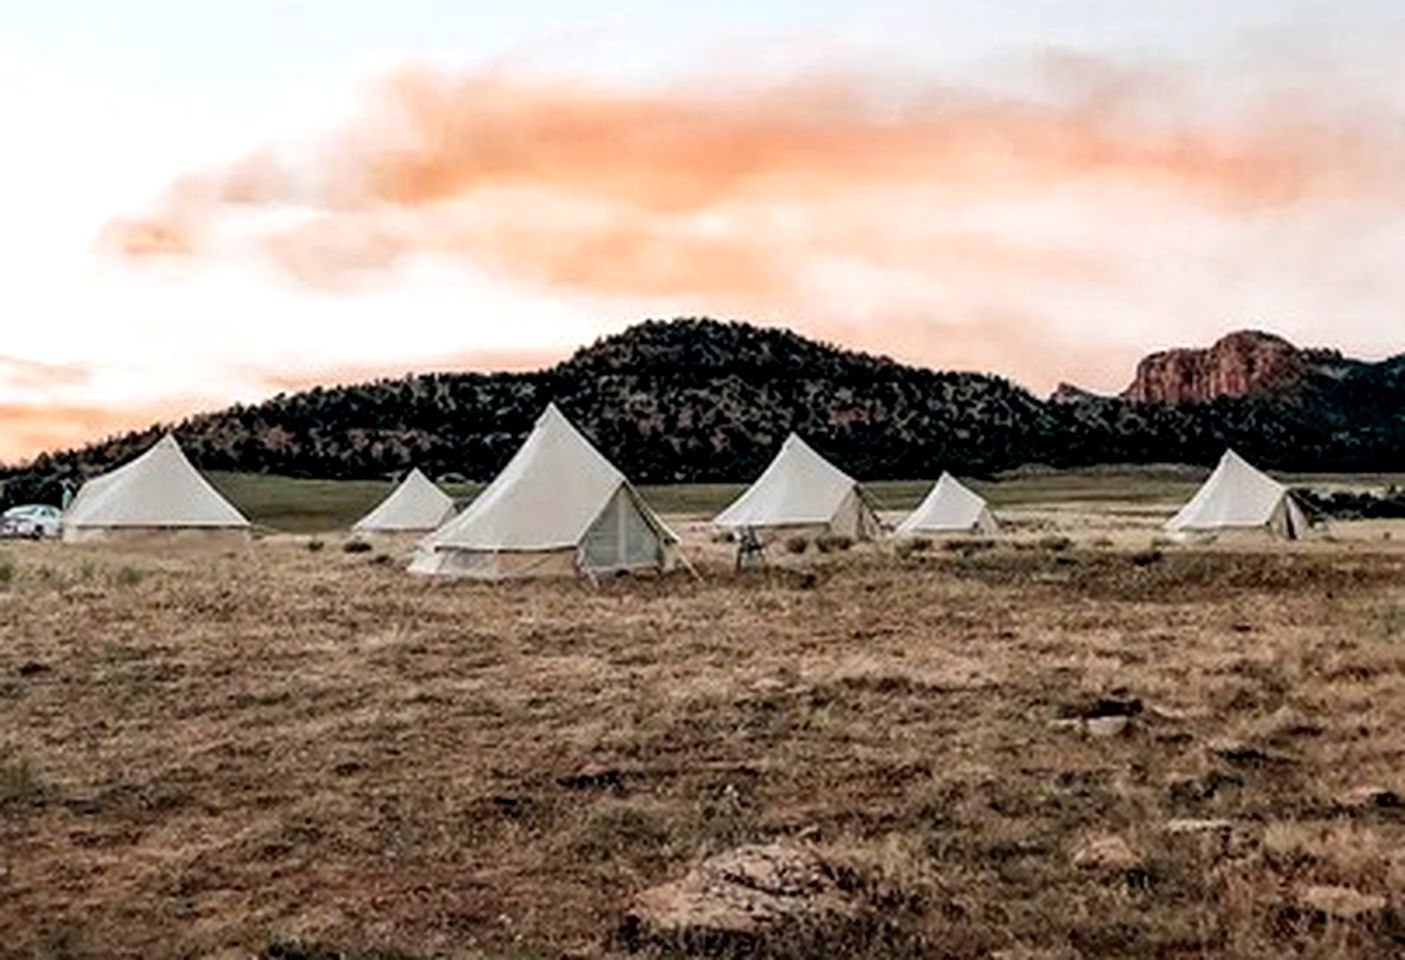 Bell tent rental for glamping near the Grand Canyon